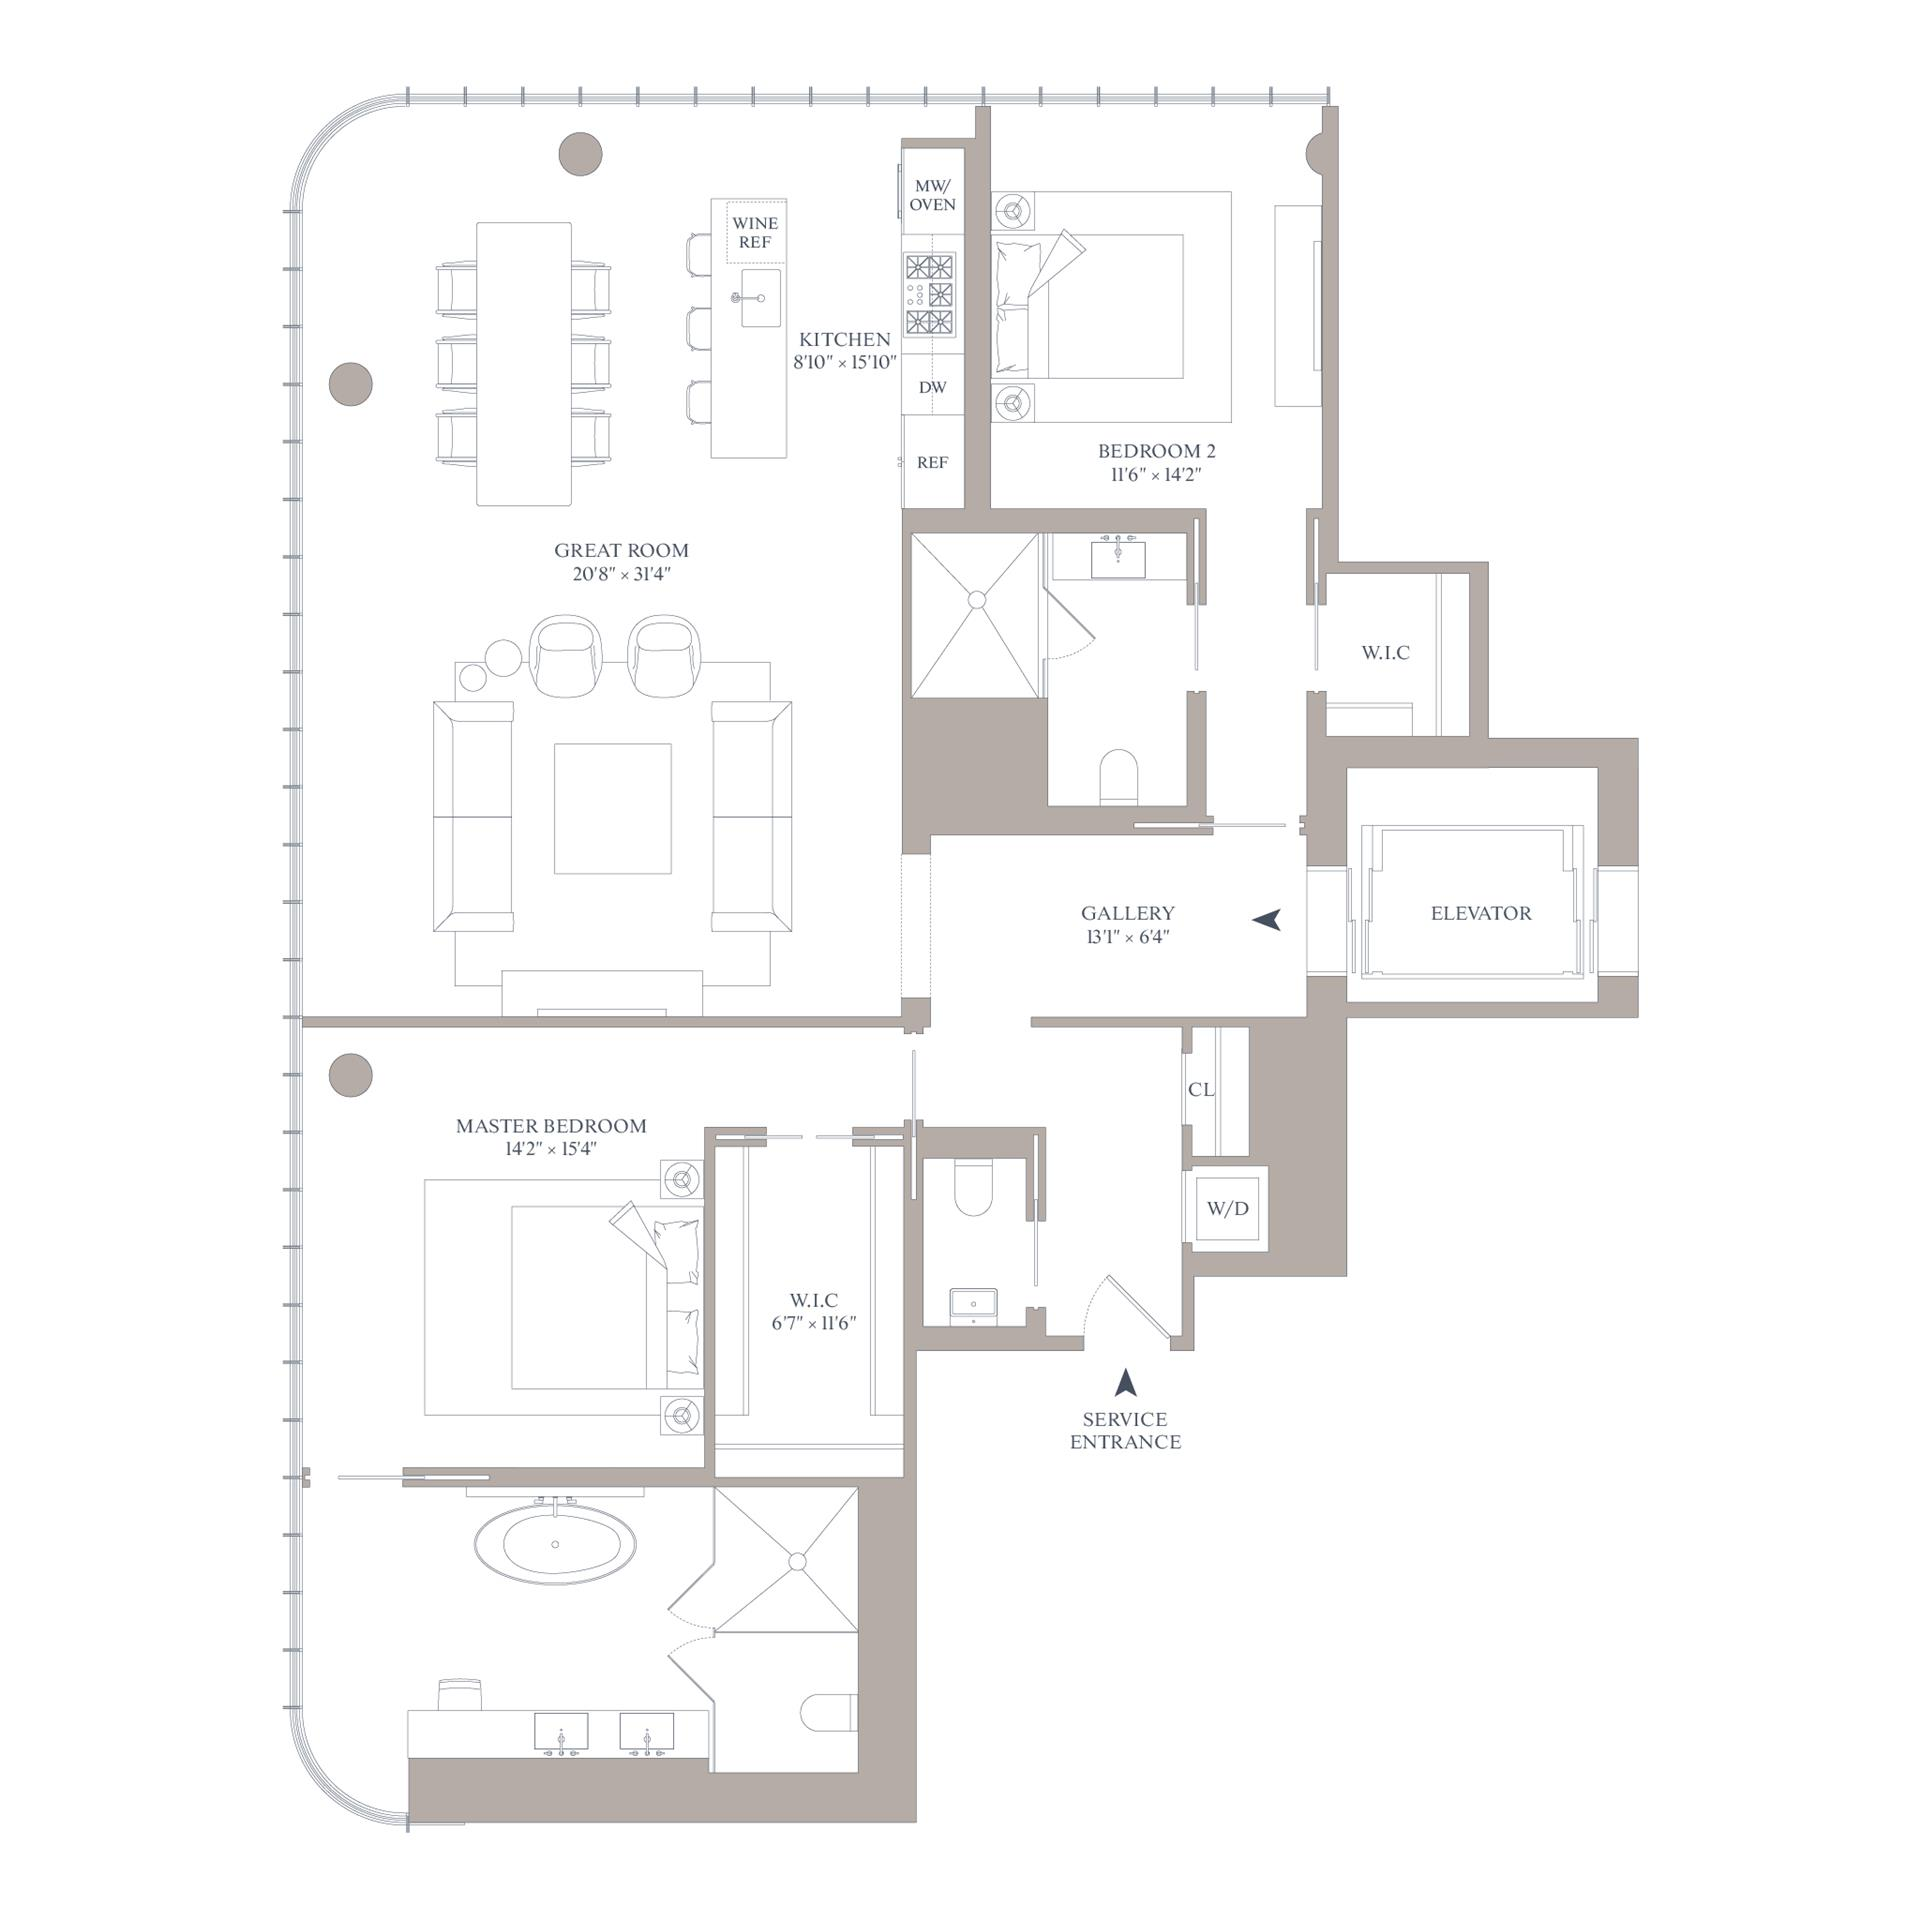 Floor plan of 565 Broome St, N18A - SoHo - Nolita, New York